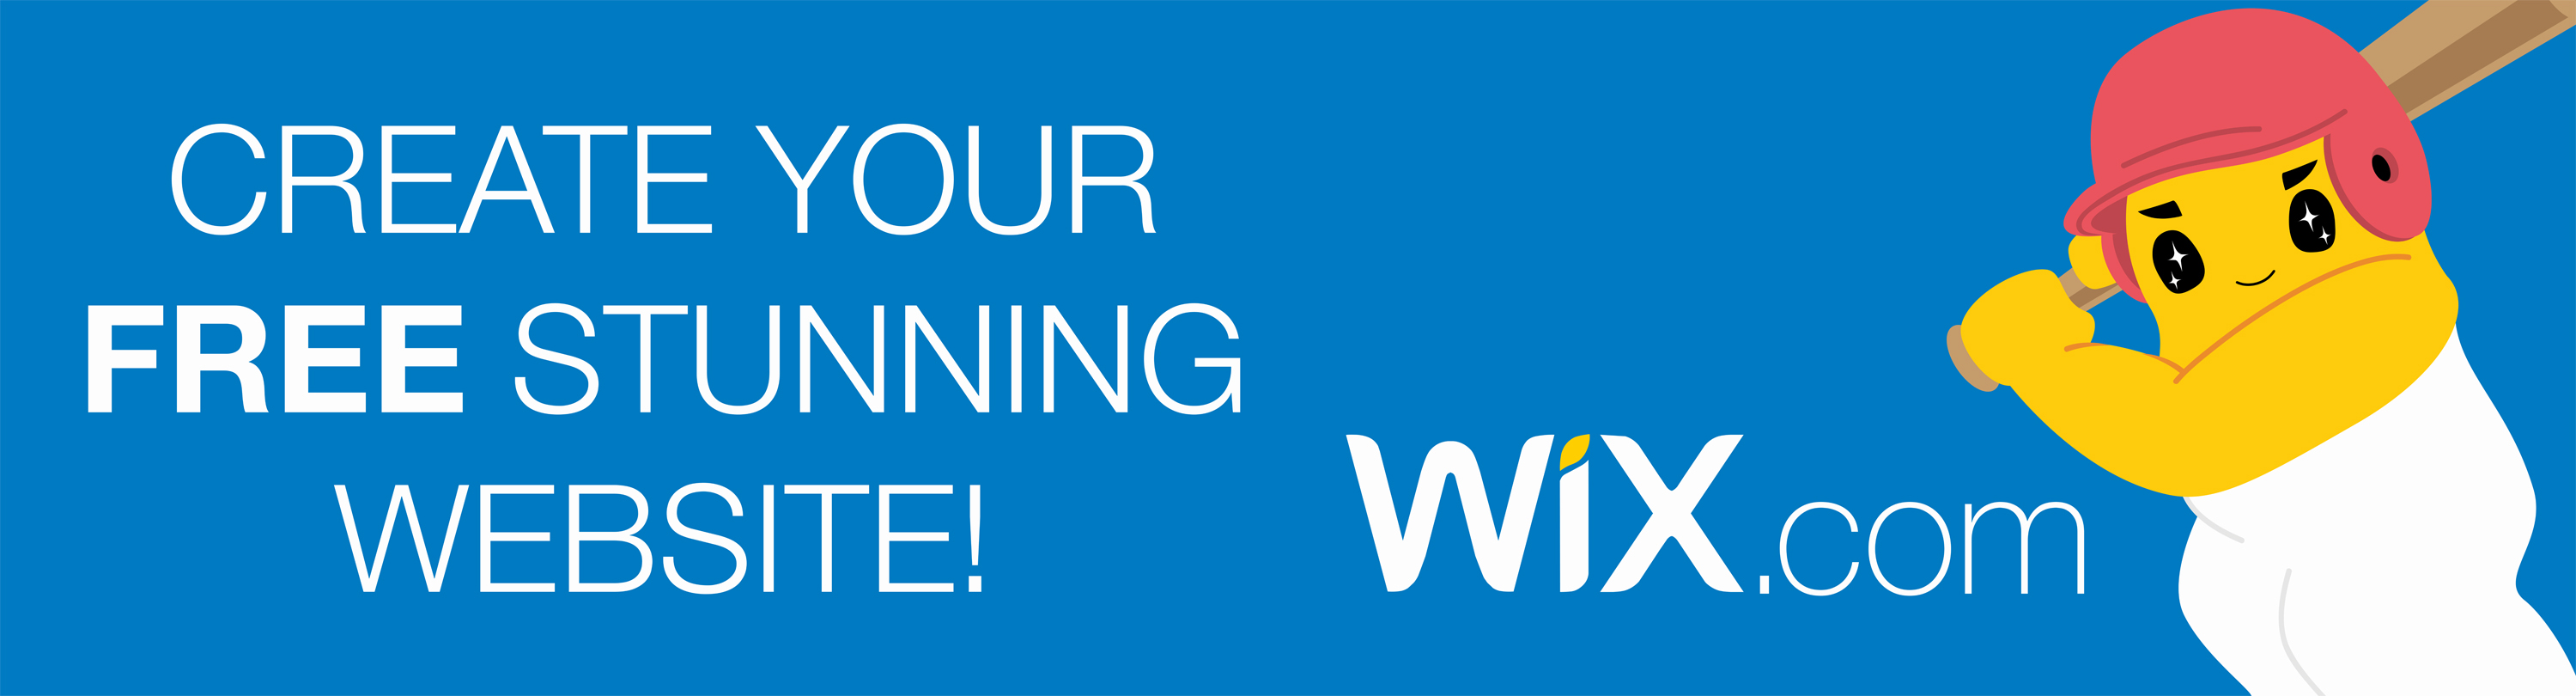 Why I chose to leave the Wix banner on my website, and why you might want to consider doing the same (also read as: Building my own website with a purpose in